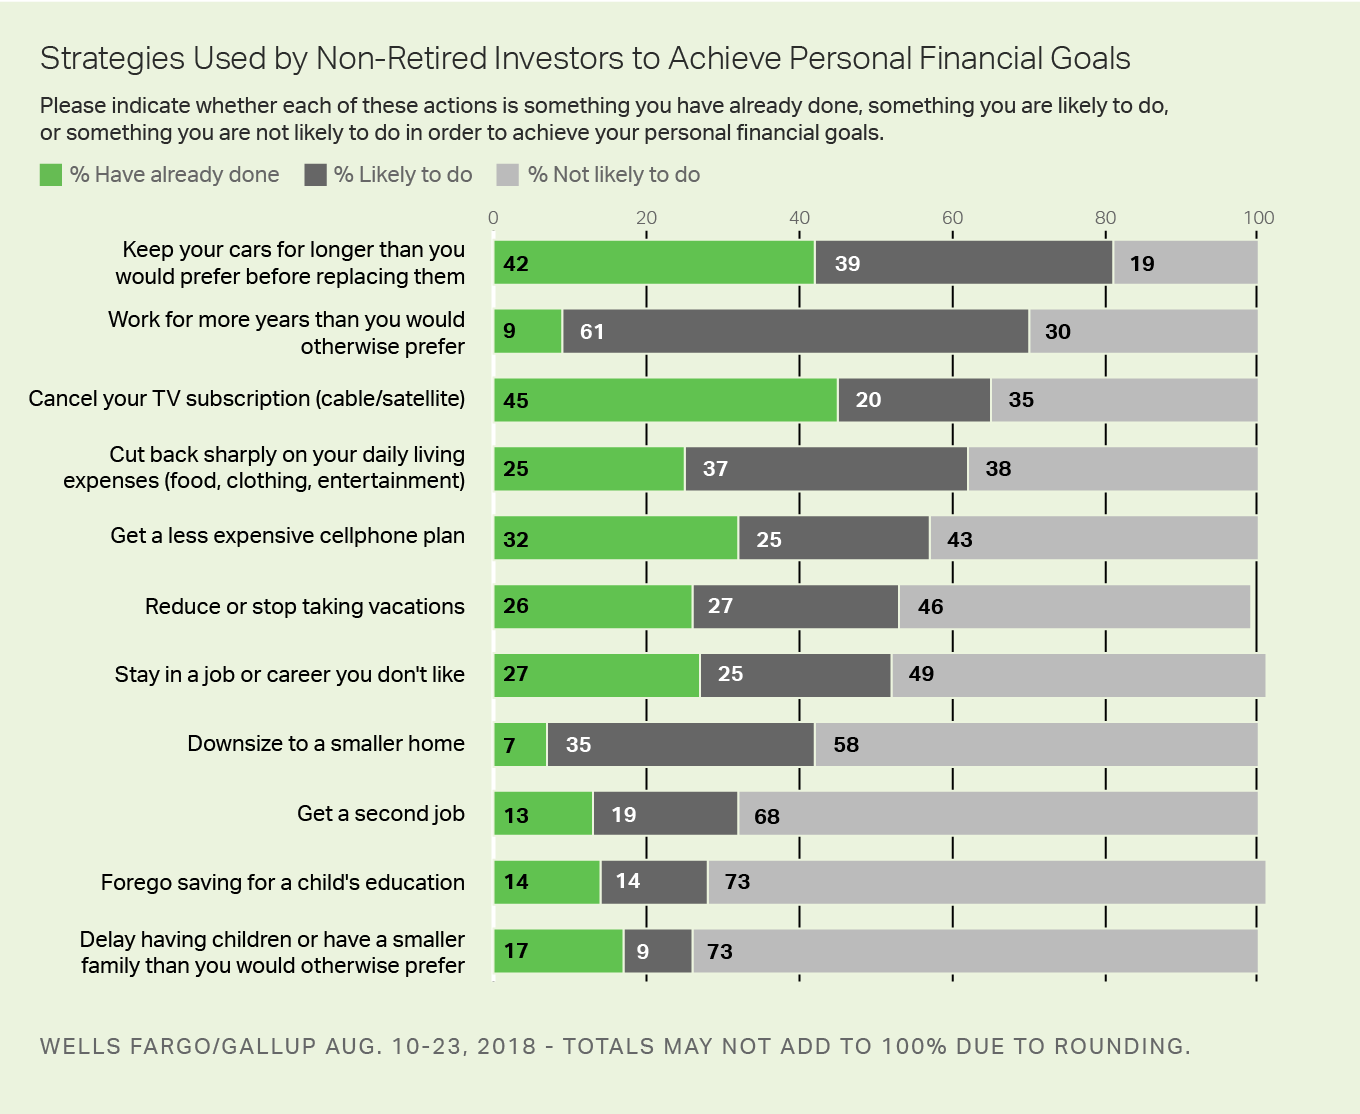 Bar chart showing 11 different actions that could help non-retired investors achieve their financial goals.